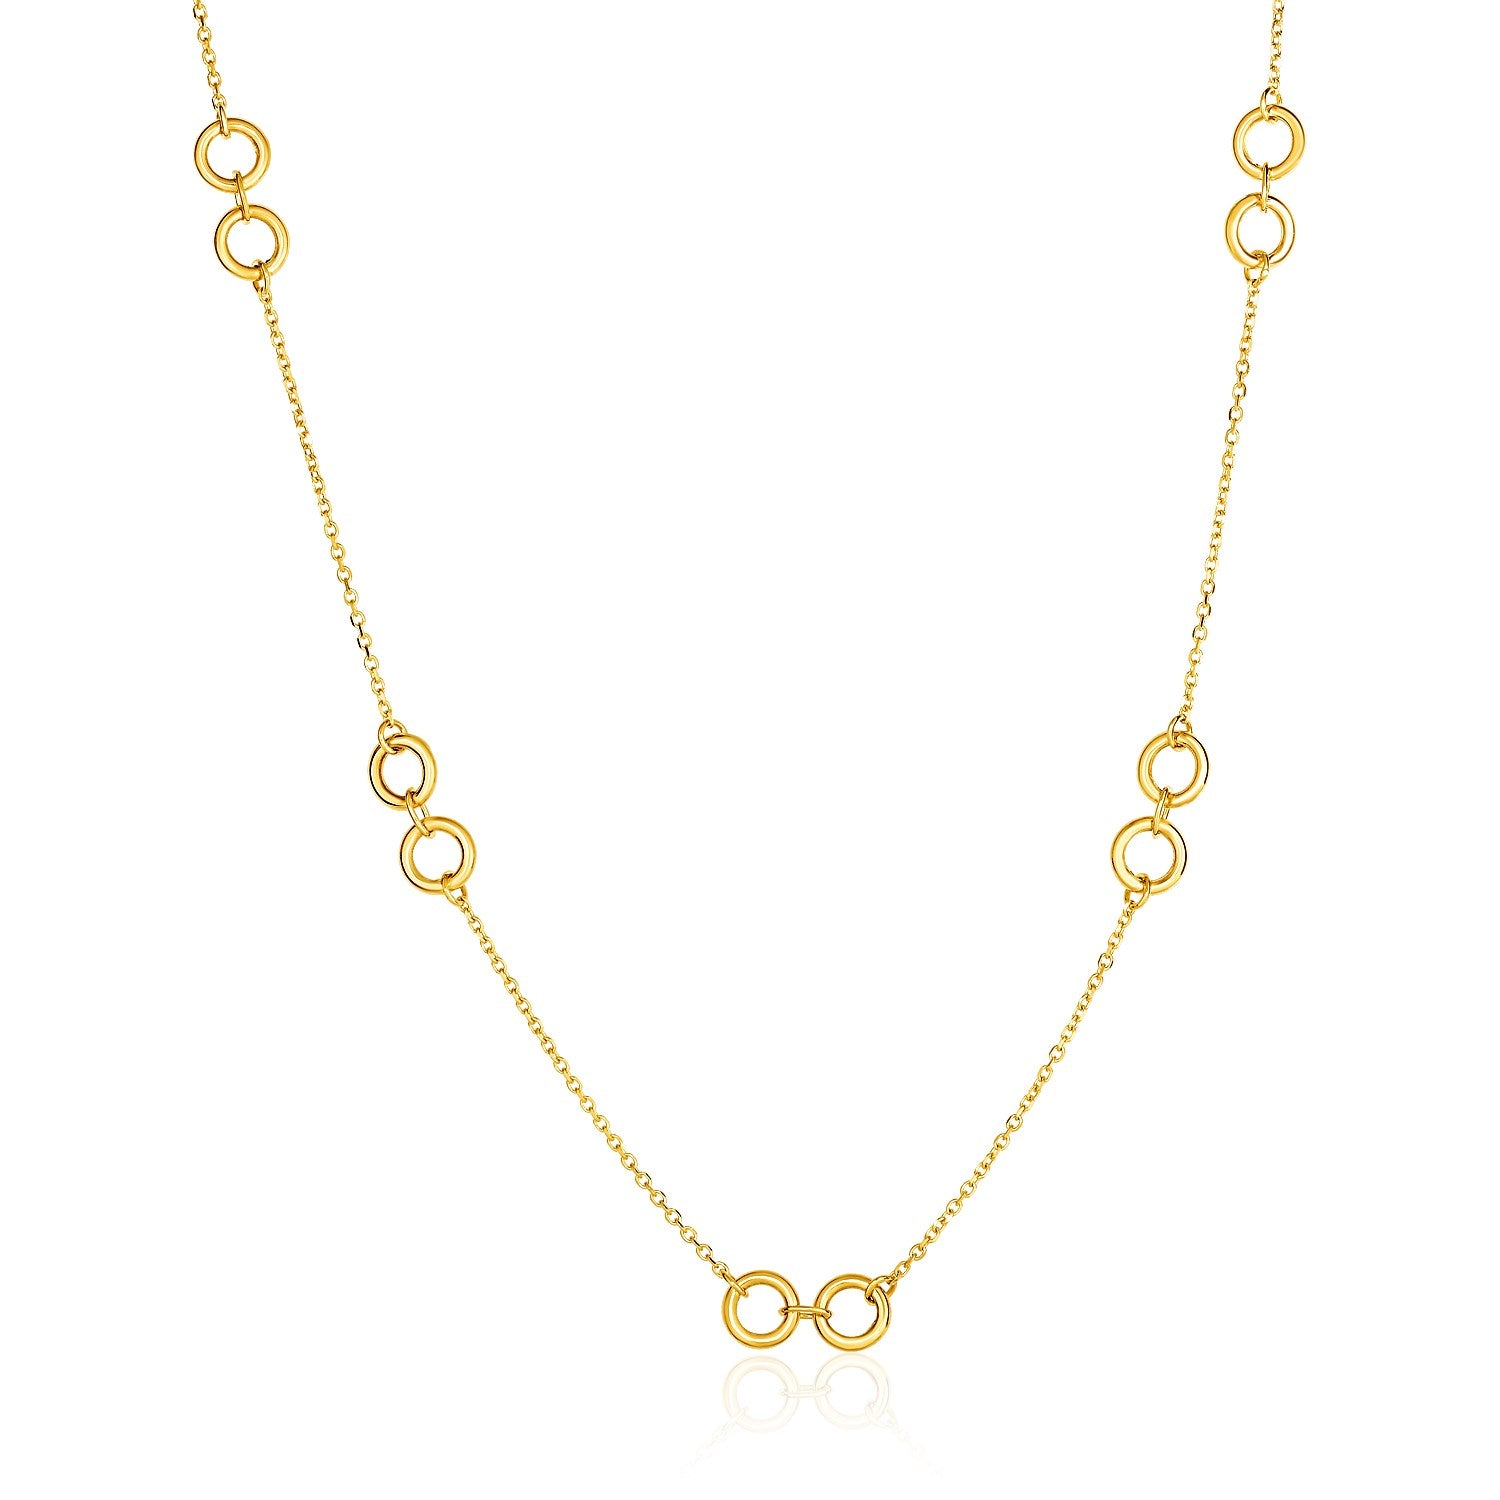 Unique Hollywood Style 14K Yellow Gold Double Ring and Cable Chain Necklace